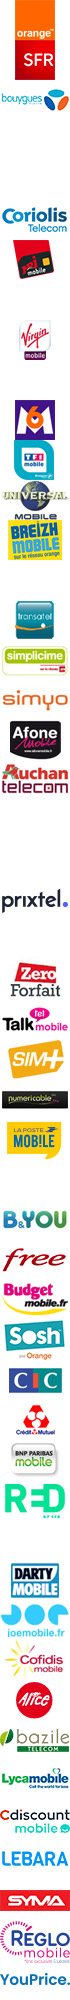 Forfait La Poste Mobile Music 2h 2Go sans mobile sans engagement